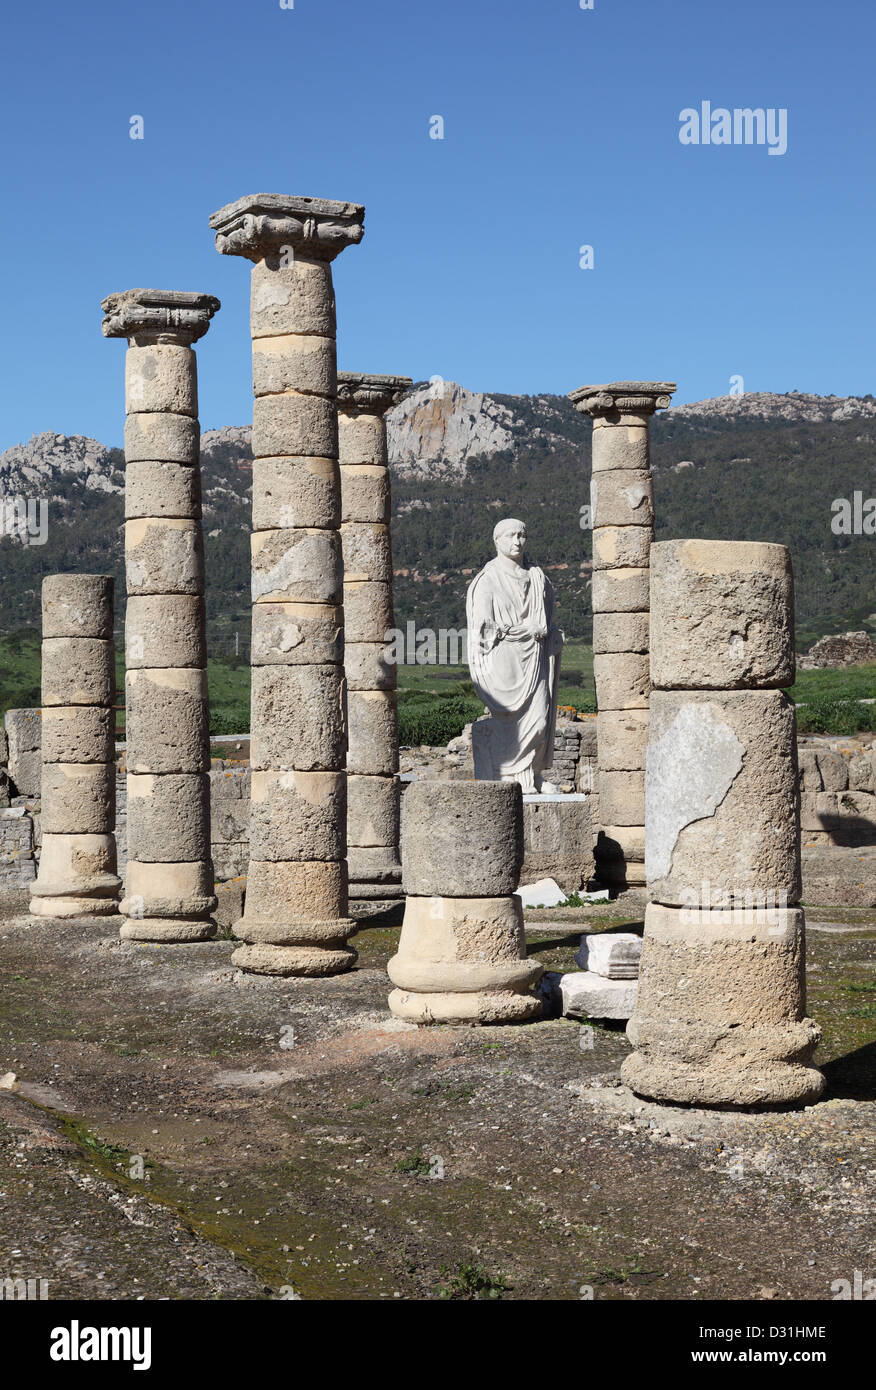 Baleo Claudia - roman ruins in Bolonia, Andalusia, southern Spain Stock Photo